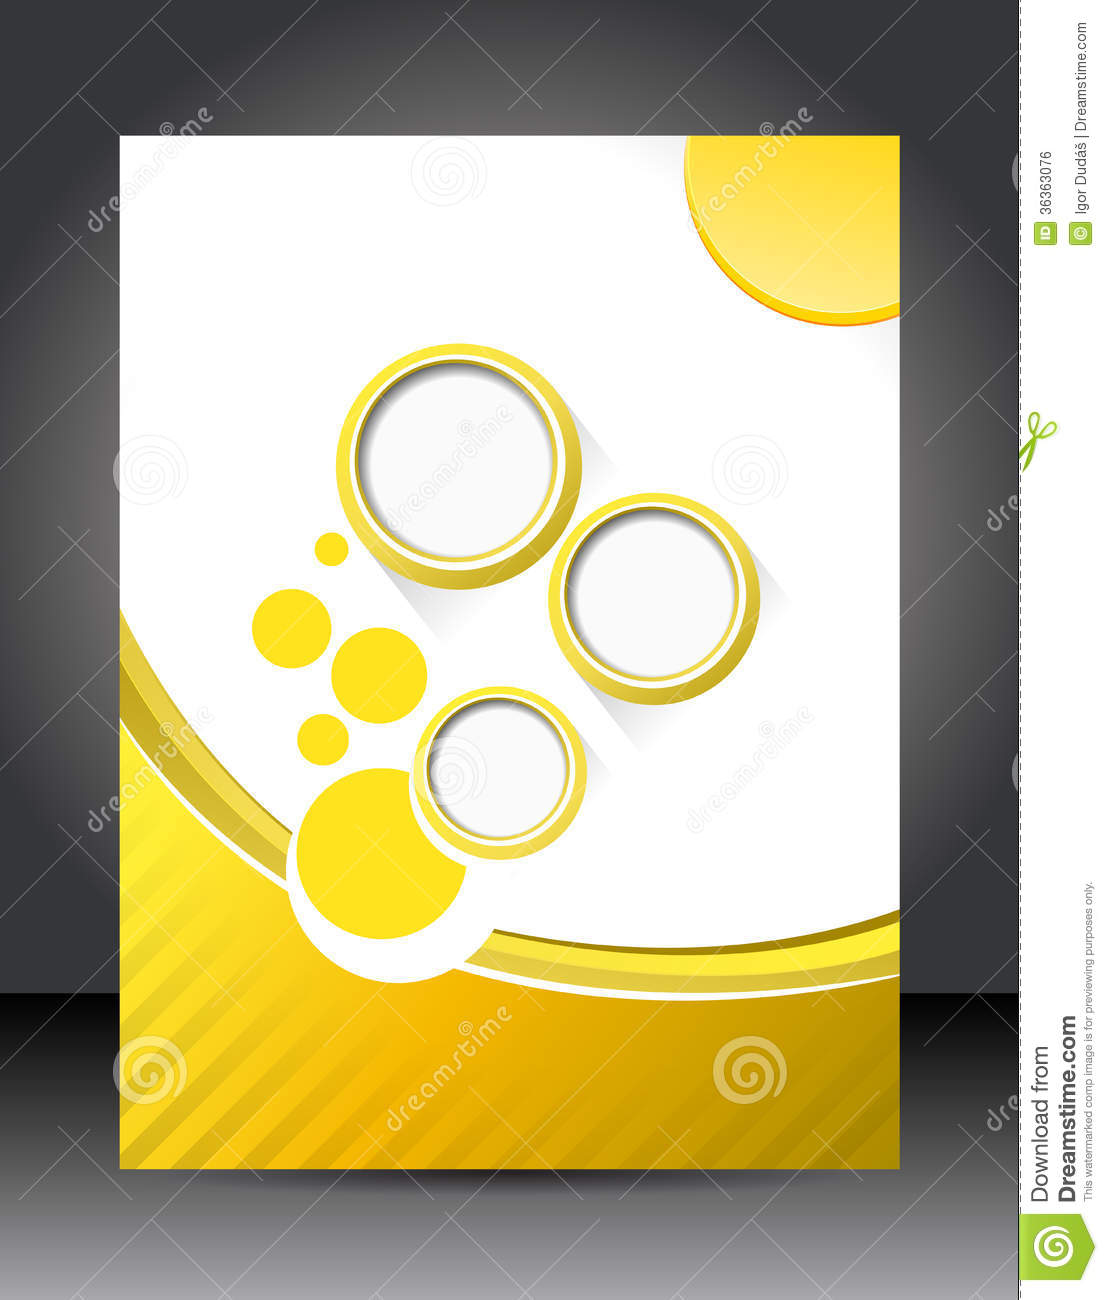 design layout template royalty stock image image  design layout template